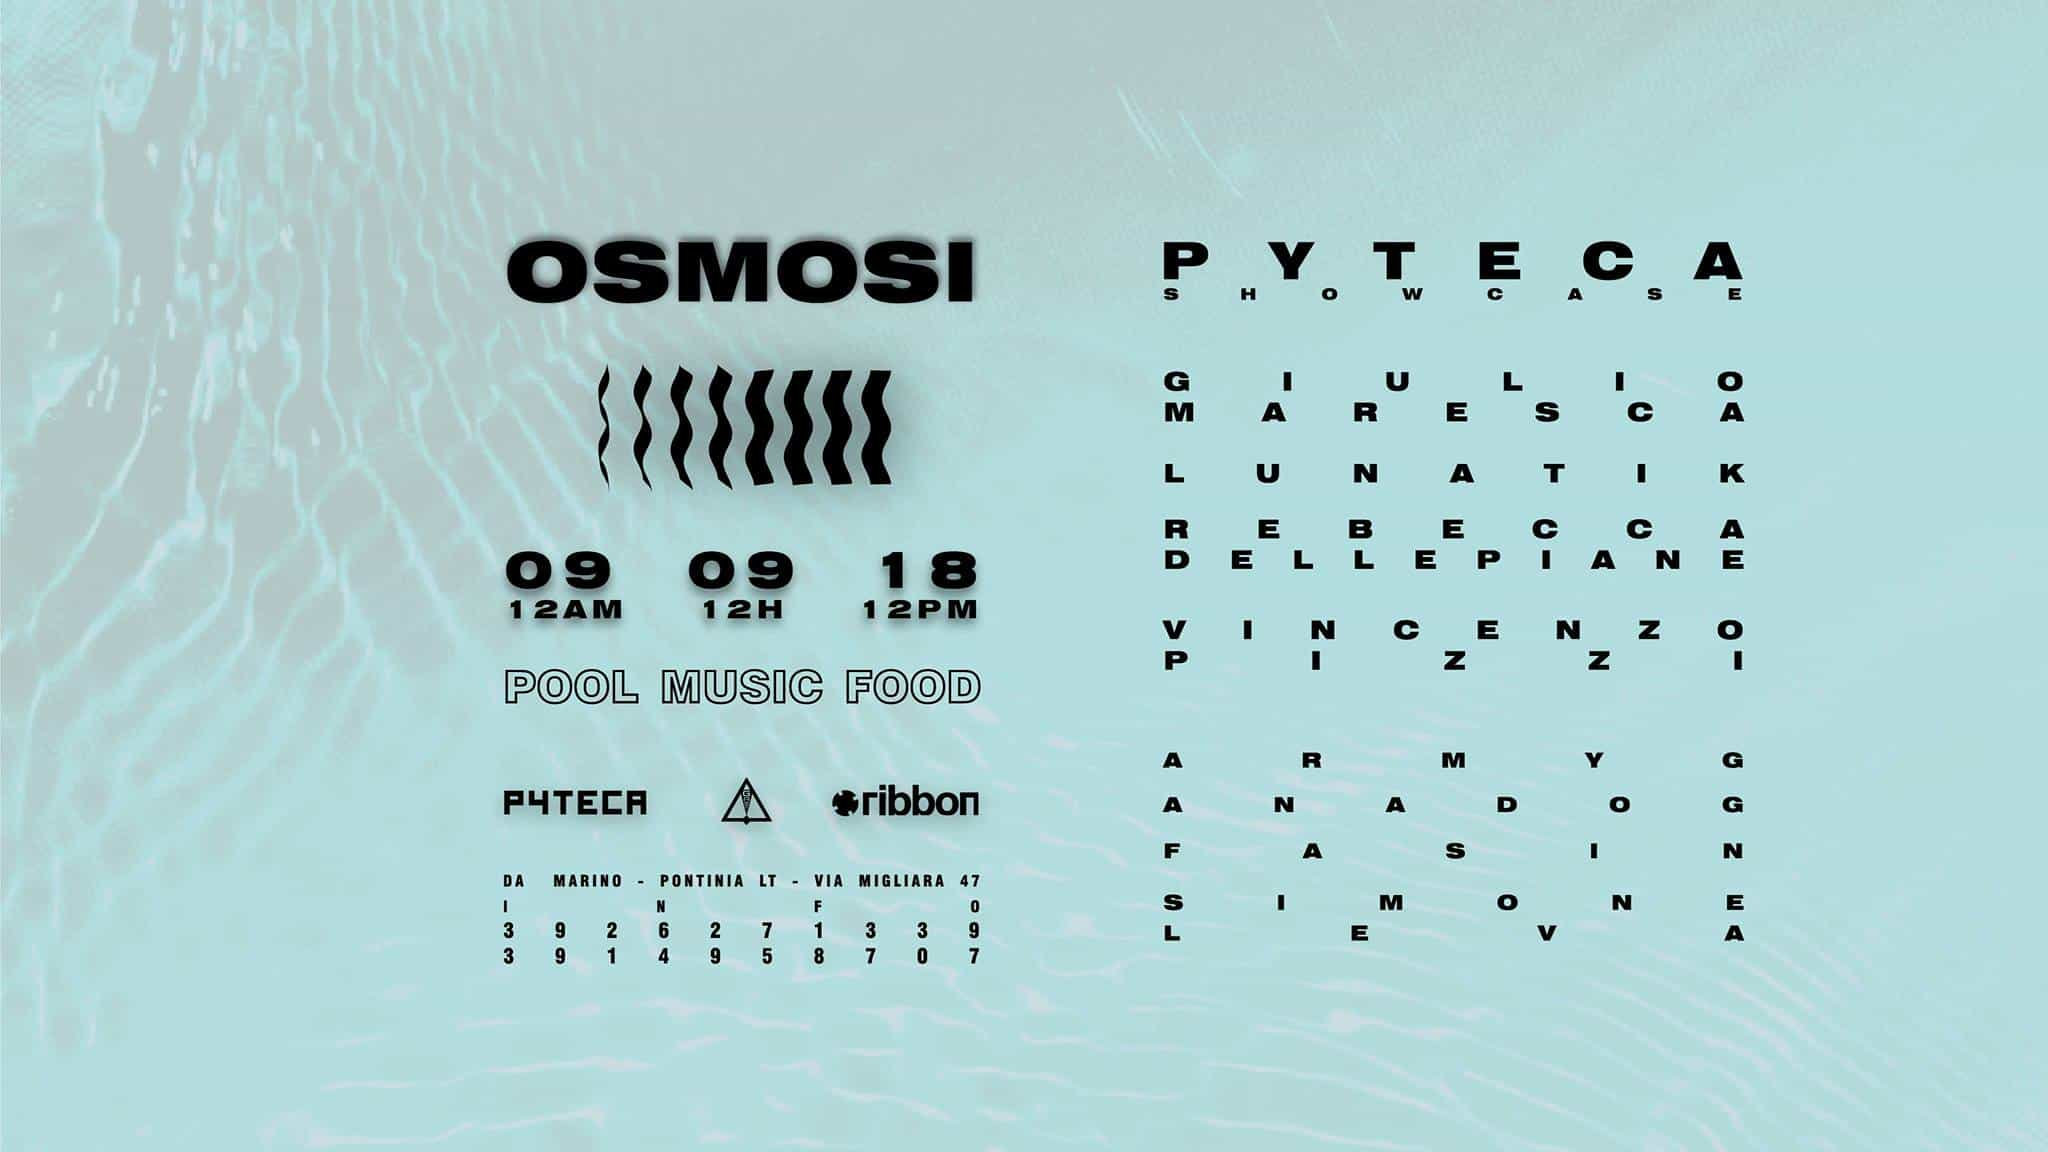 Osmosi Pyteca showcase